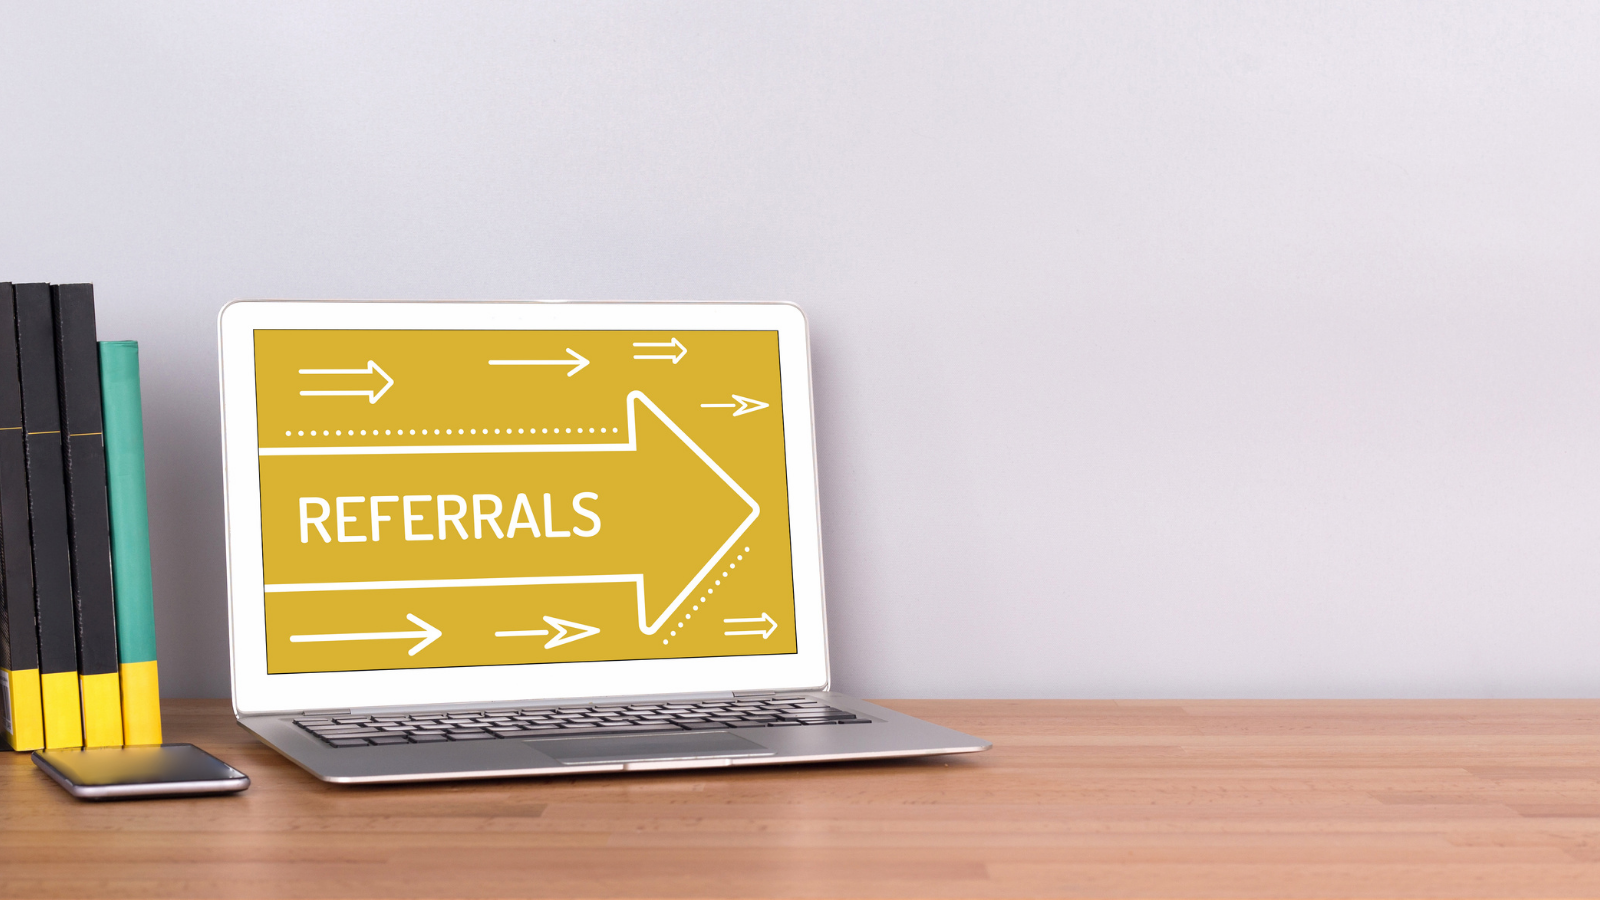 The best way to grow your business is through client referrals. Start by offering top-notch customer service, then layer in these referral-generating ideas.